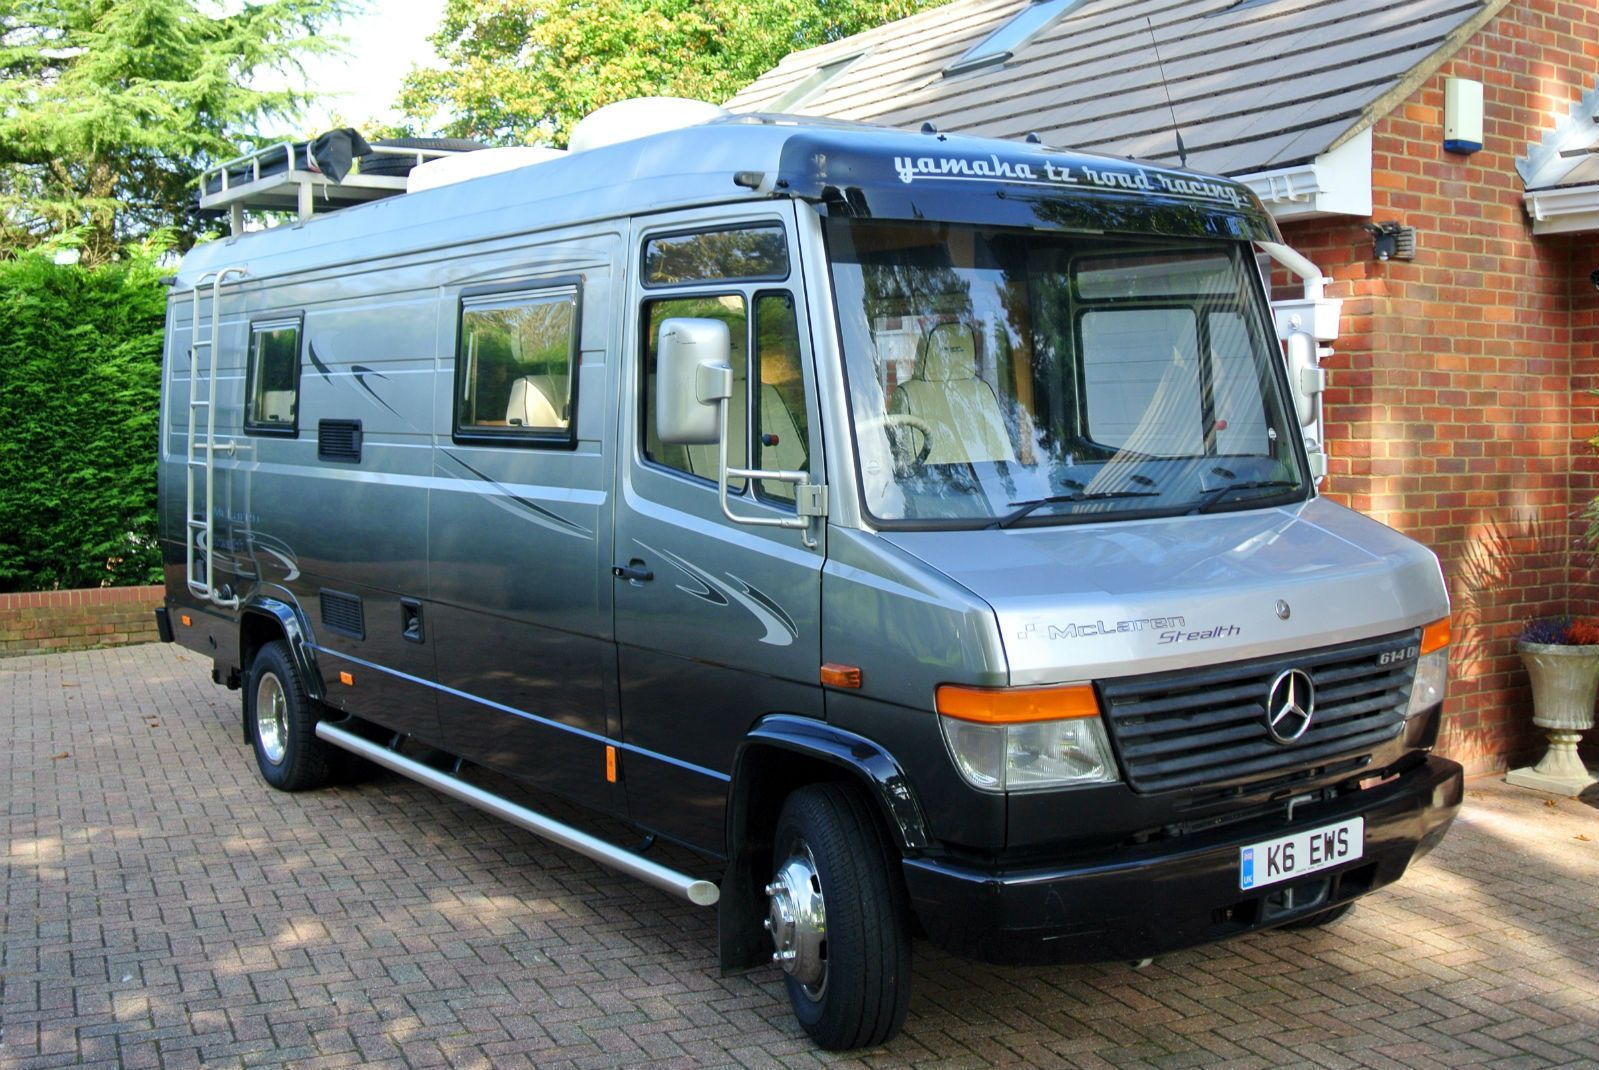 Mercedes Benz Motorhome Campervan Vario In Cars Motorcycles Vehicles Campers Caravans M Mercedes Benz Vans Mercedes Benz Motorhome Mercedes Benz Trucks